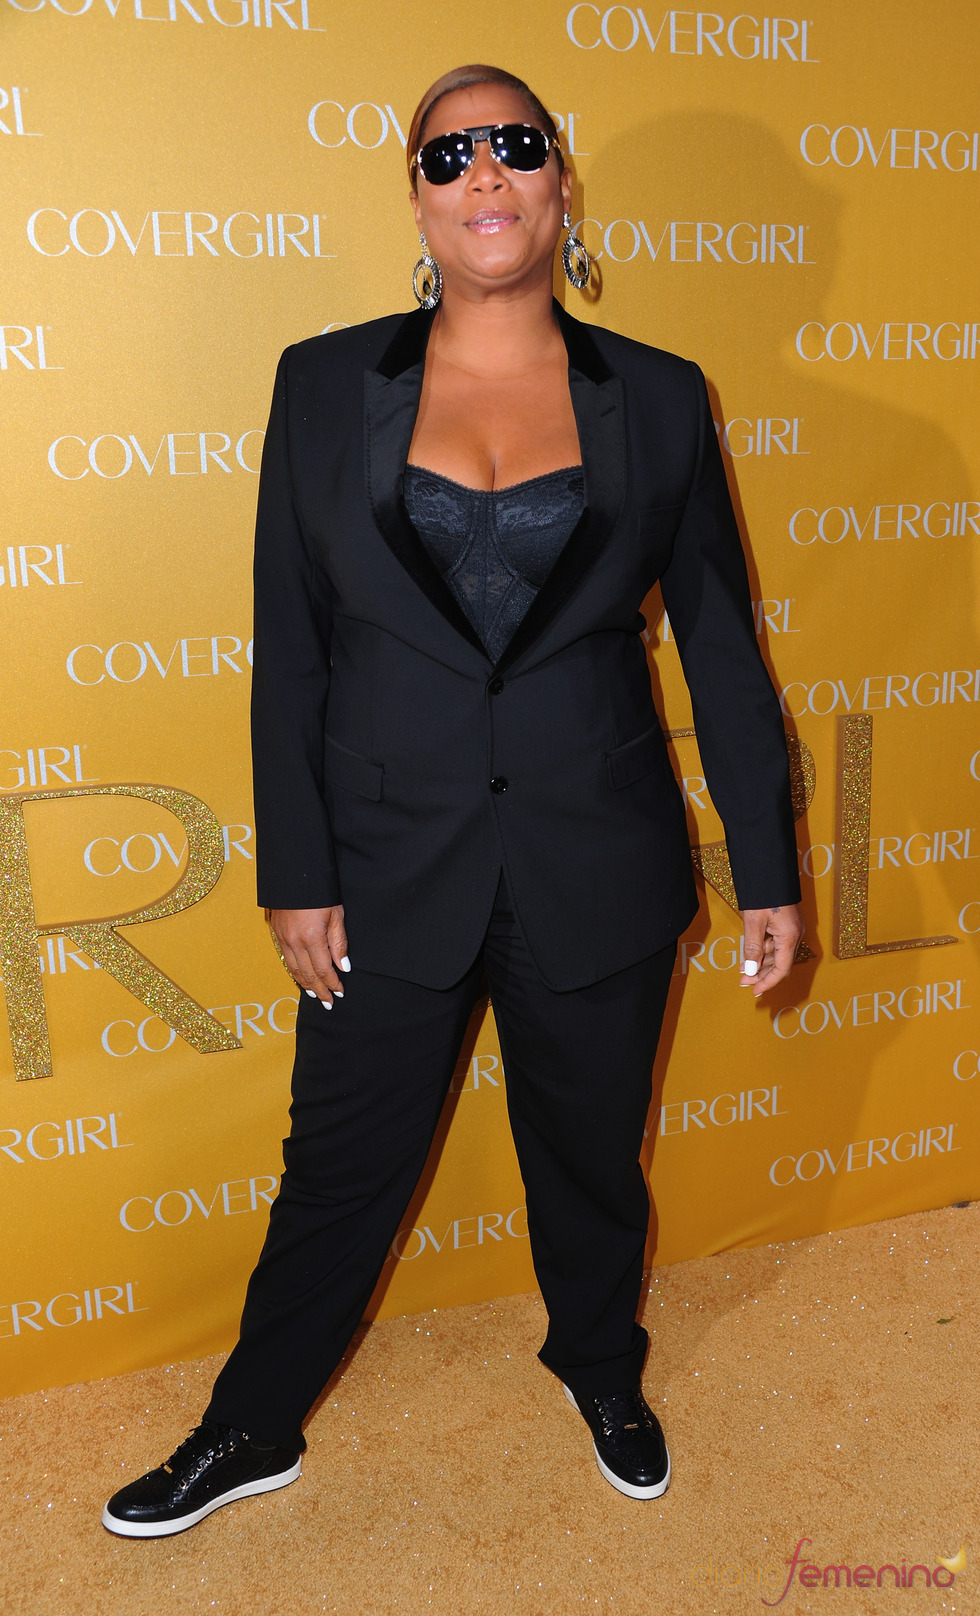 Queen Latifah en la Fiesta Covergirl